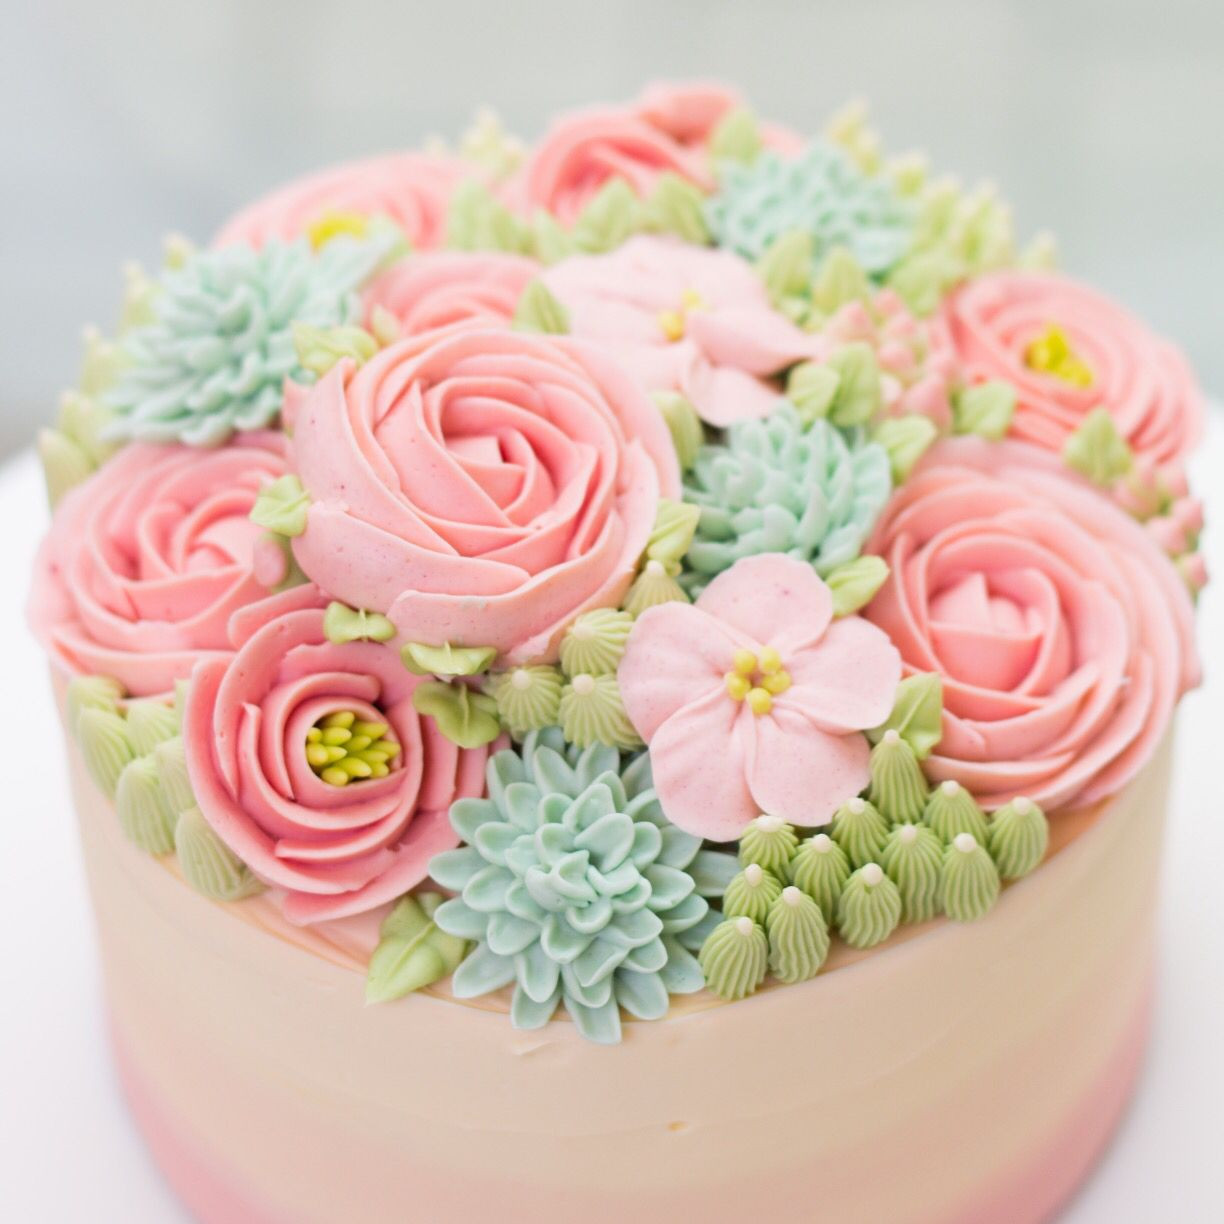 Best ideas about Birthday Cake Flowers . Save or Pin So pretty Buttercream Flowers so delicate on a cake Now.